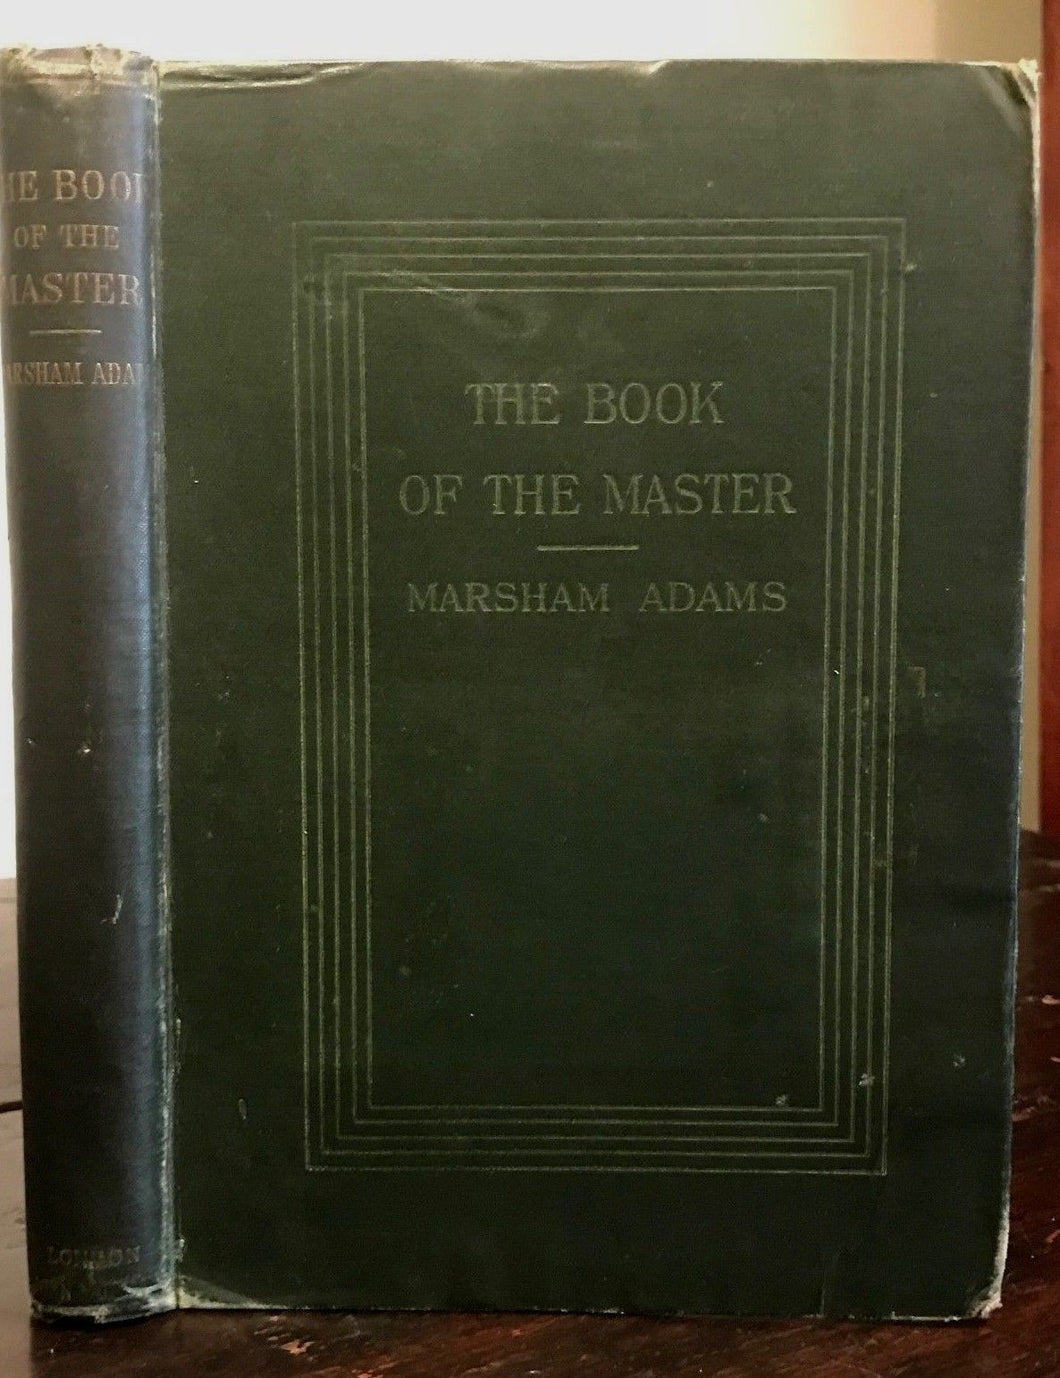 1898 - BOOK OF THE MASTER or EGYPTIAN DOCTRINE OF LIGHT BORN OF VIRGIN - ADAMS